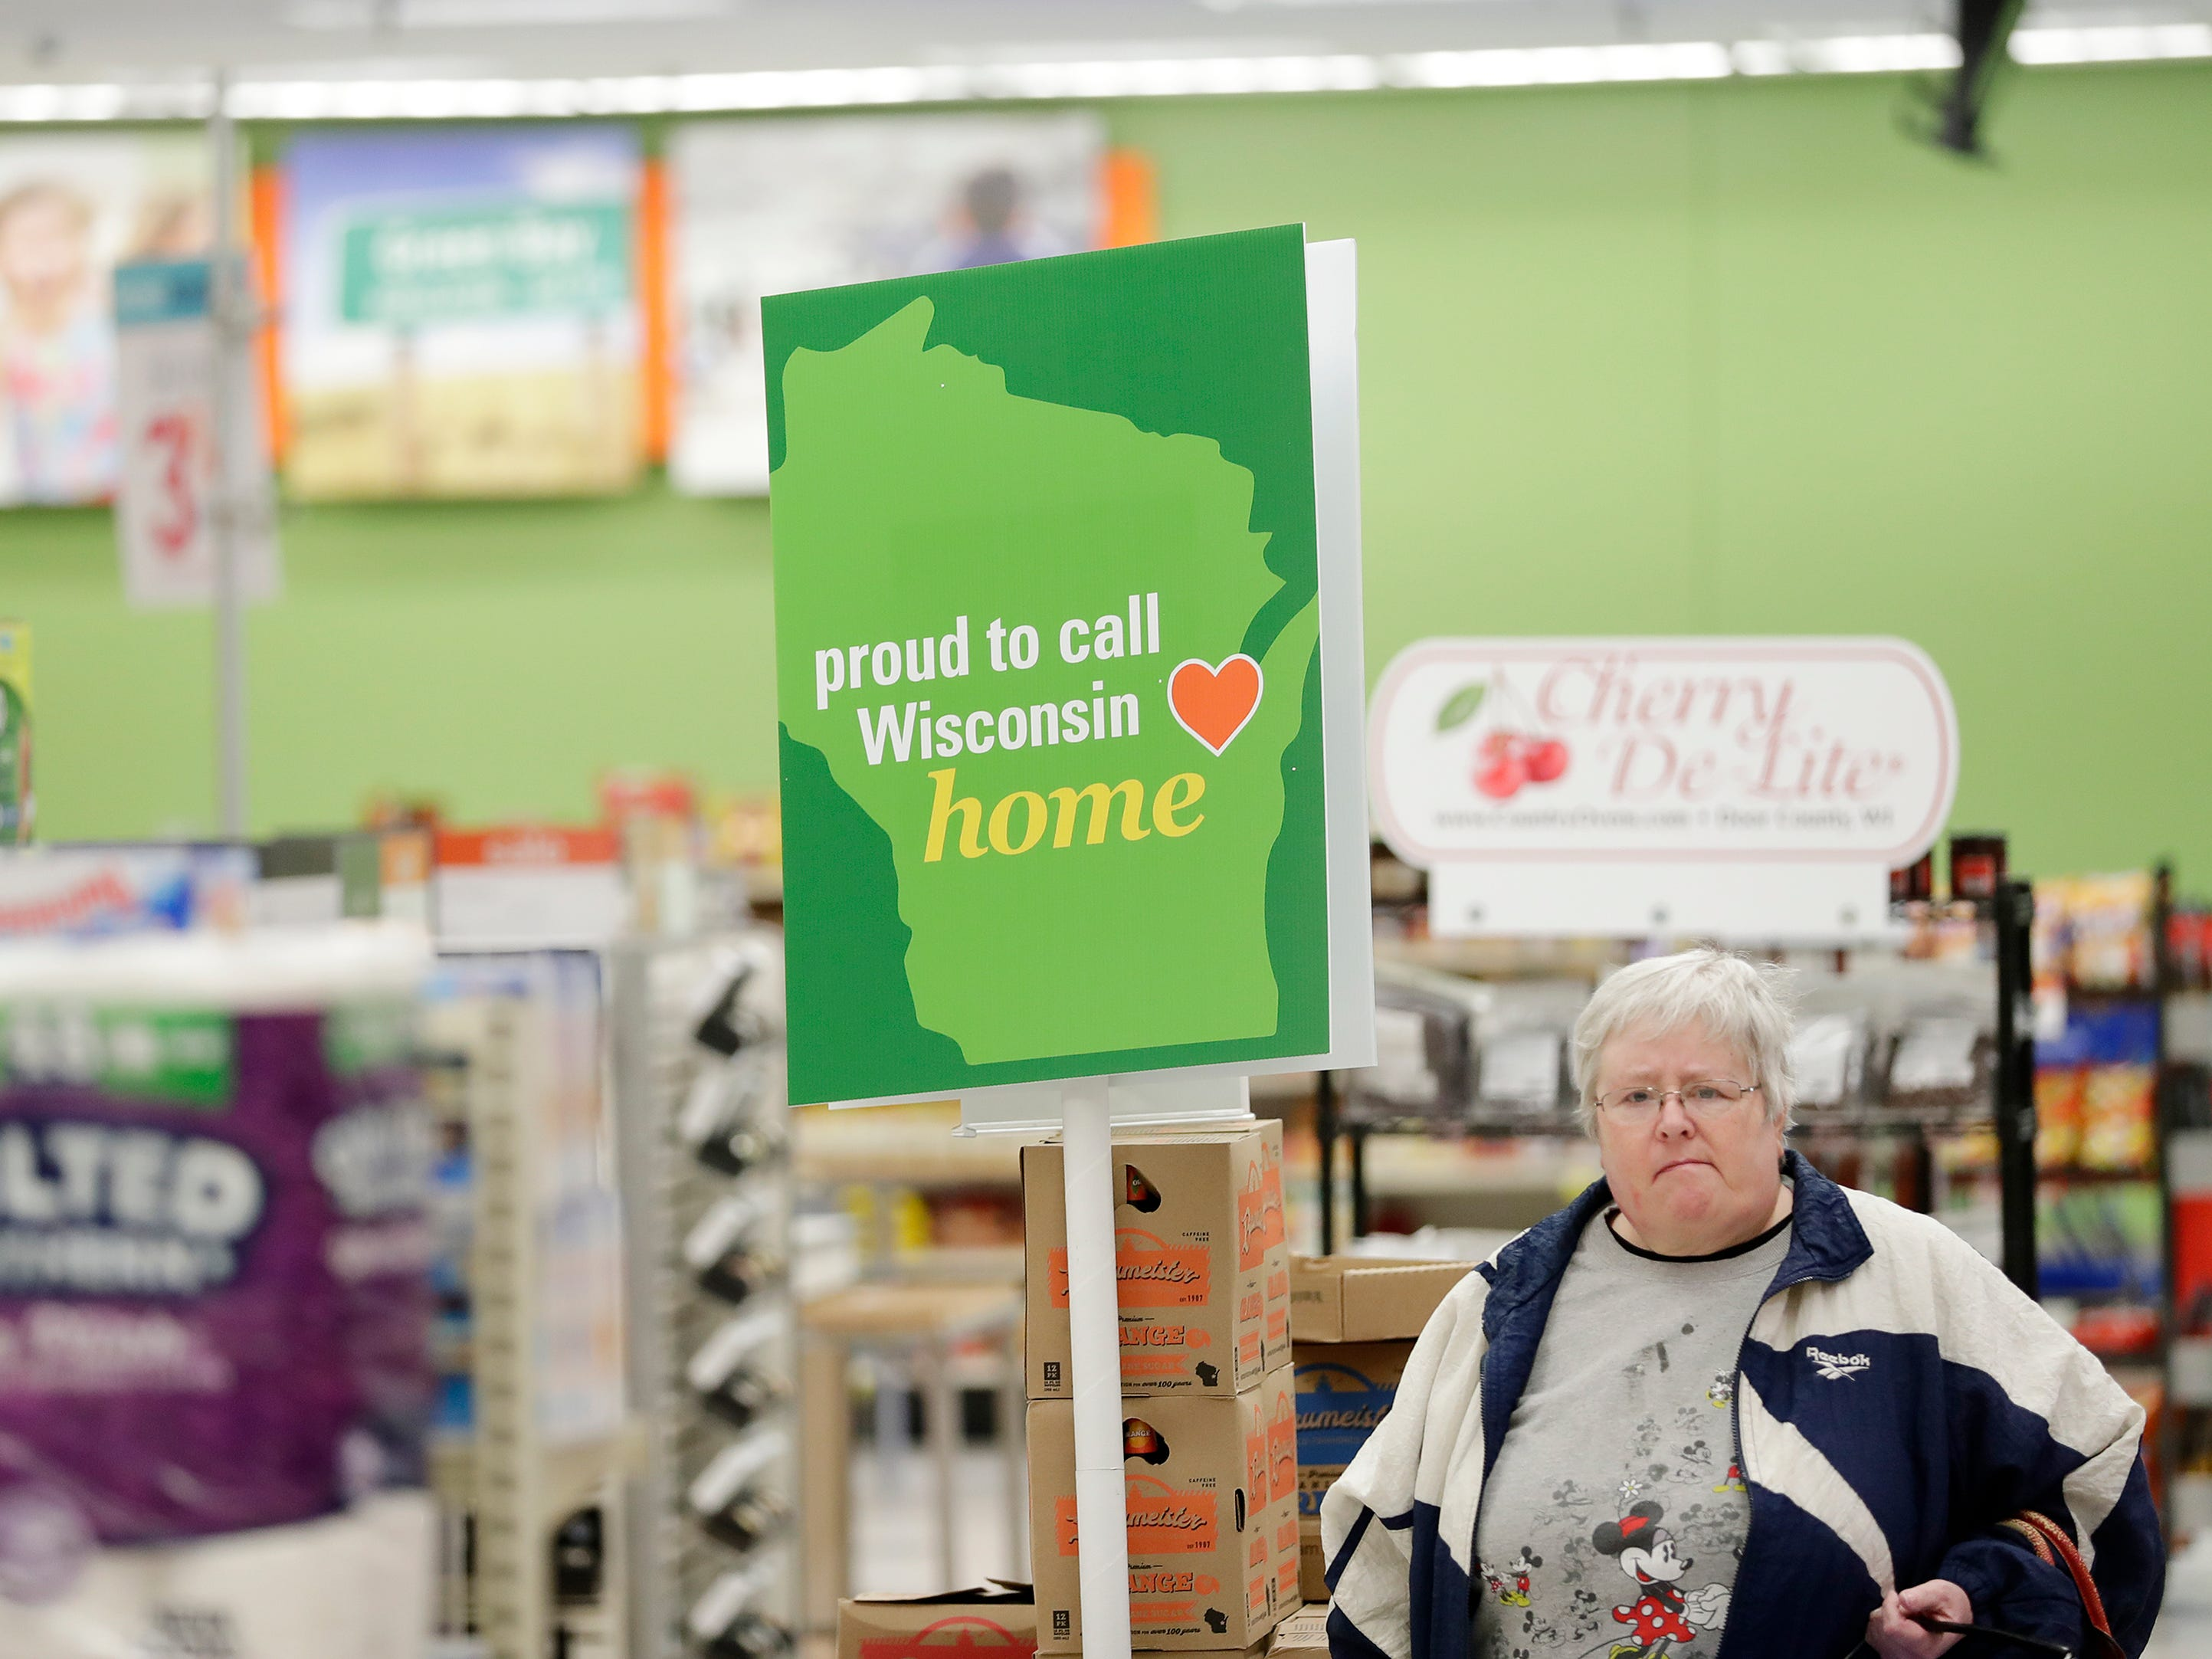 Vicki Villers shops at the original Shopko store on Wednesday, January 16, 2019 in Green Bay, Wis. Shopko filed for chapter 11 bankruptcy on Wednesday and announced it will close 105 stores, including the company's original store on Military Ave in Green Bay.